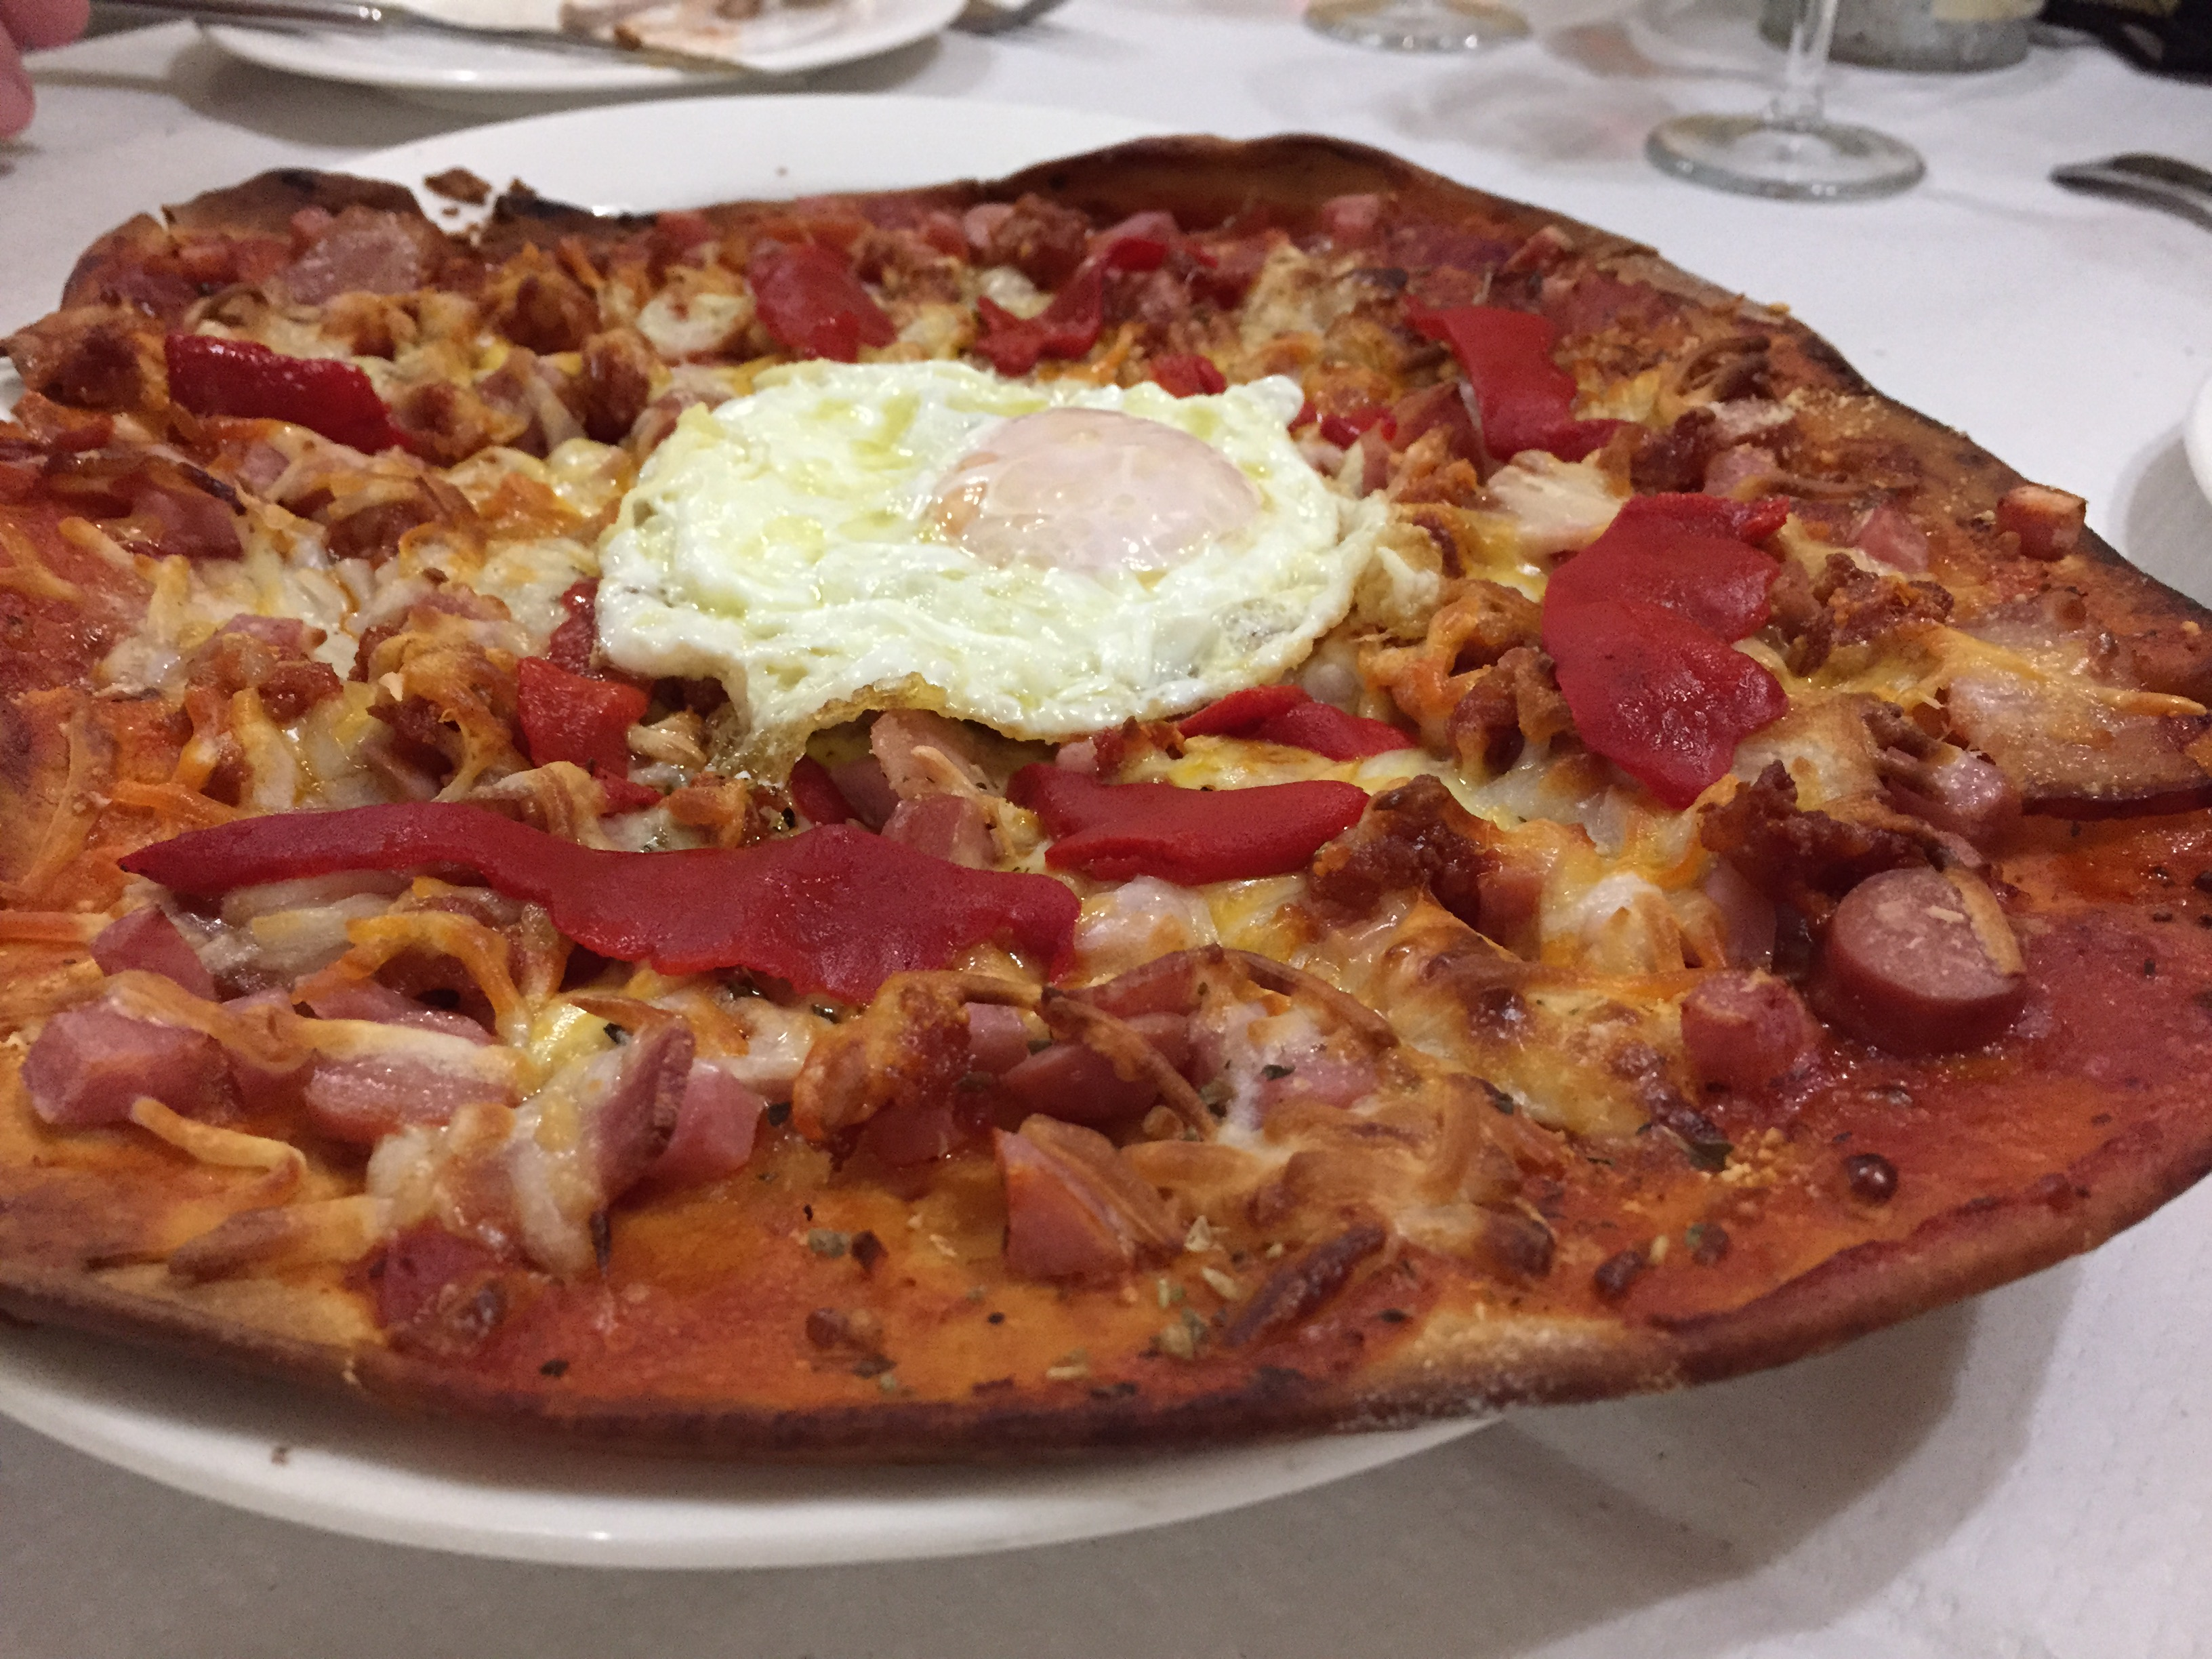 Spanish pizza, don't forget the egg!